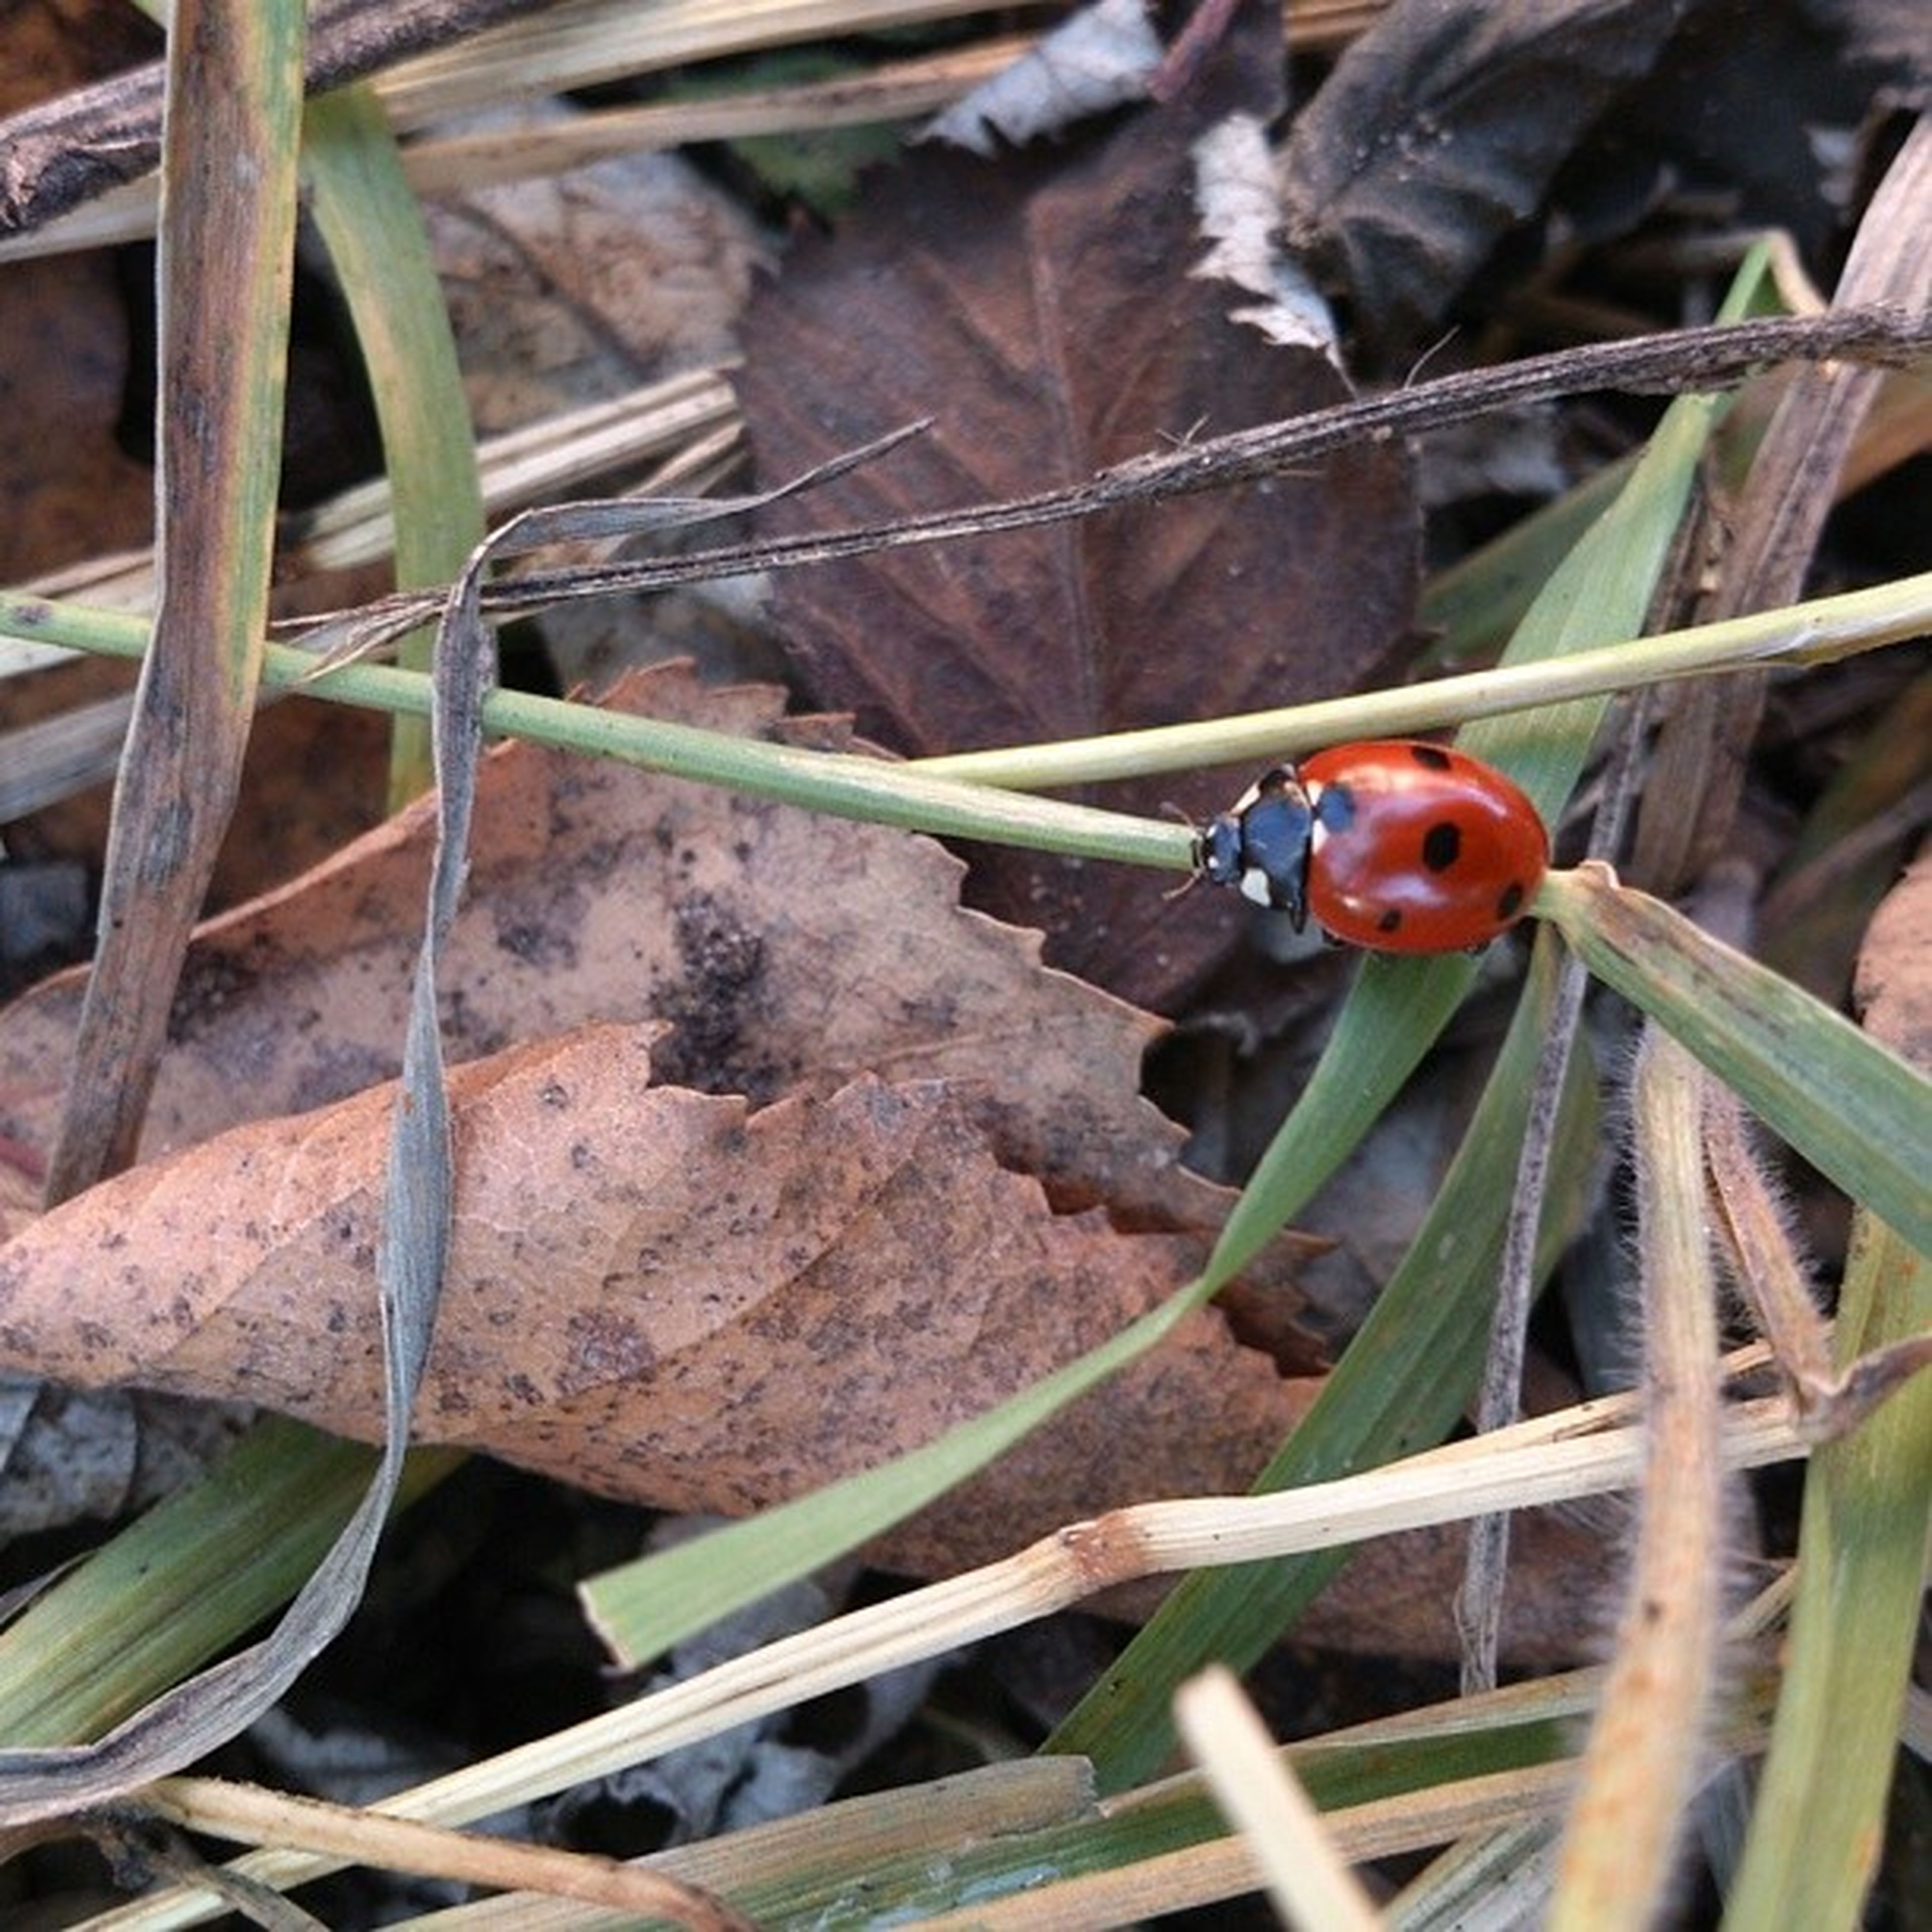 animal themes, insect, animals in the wild, one animal, wildlife, ladybug, leaf, close-up, plant, red, nature, focus on foreground, green color, selective focus, two animals, zoology, day, outdoors, beetle, high angle view